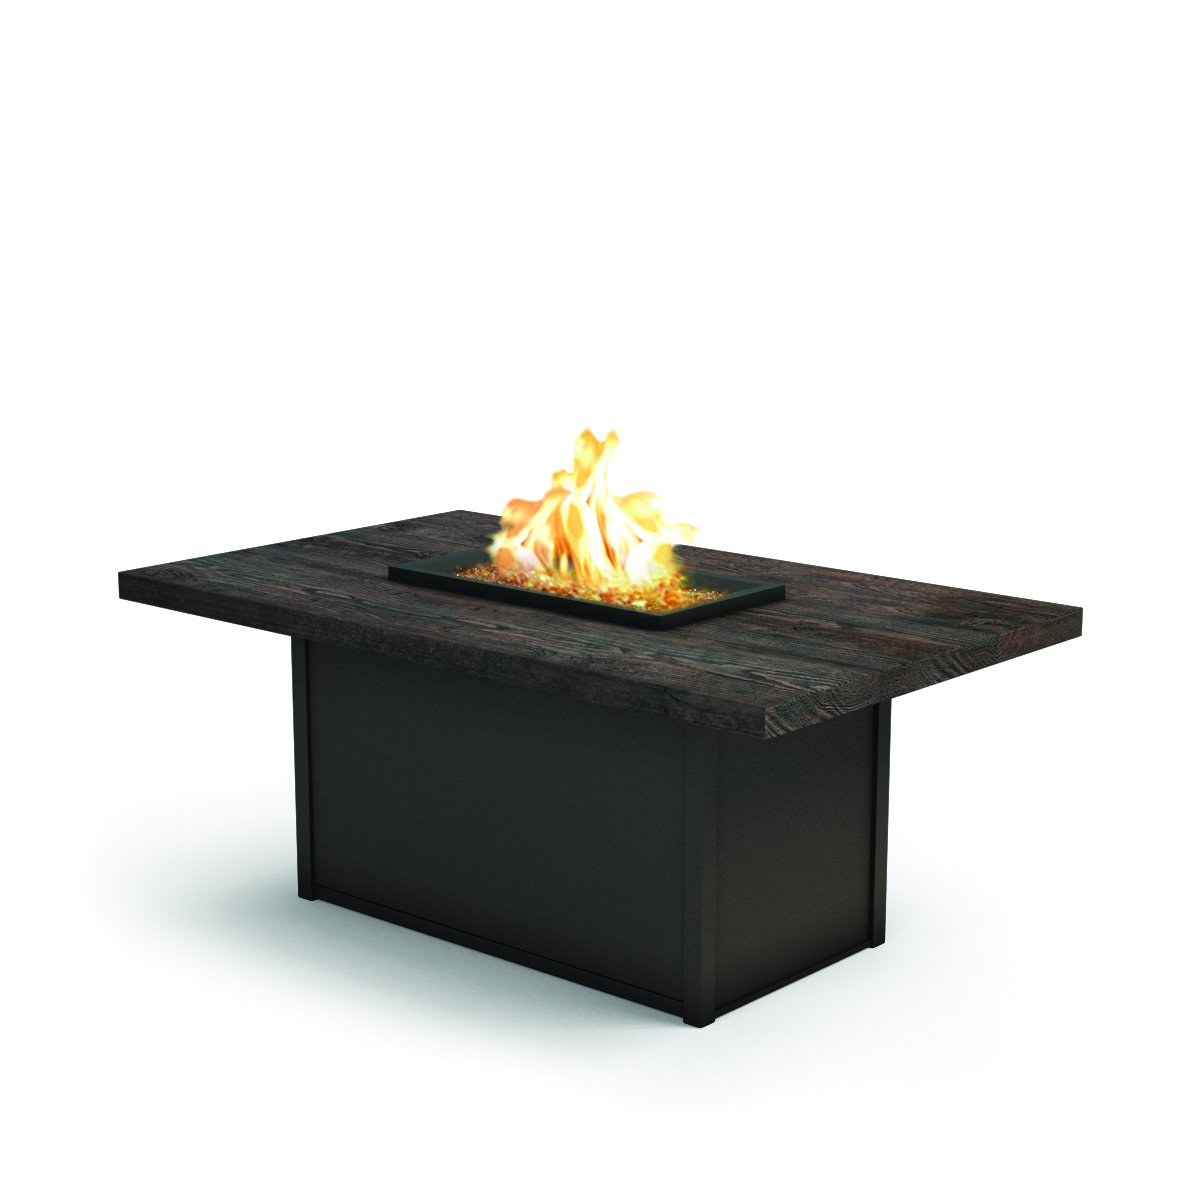 "Homecrest Timber 36"" x 60"" Rectangular Chat Fire Pit - 893660XCTM"